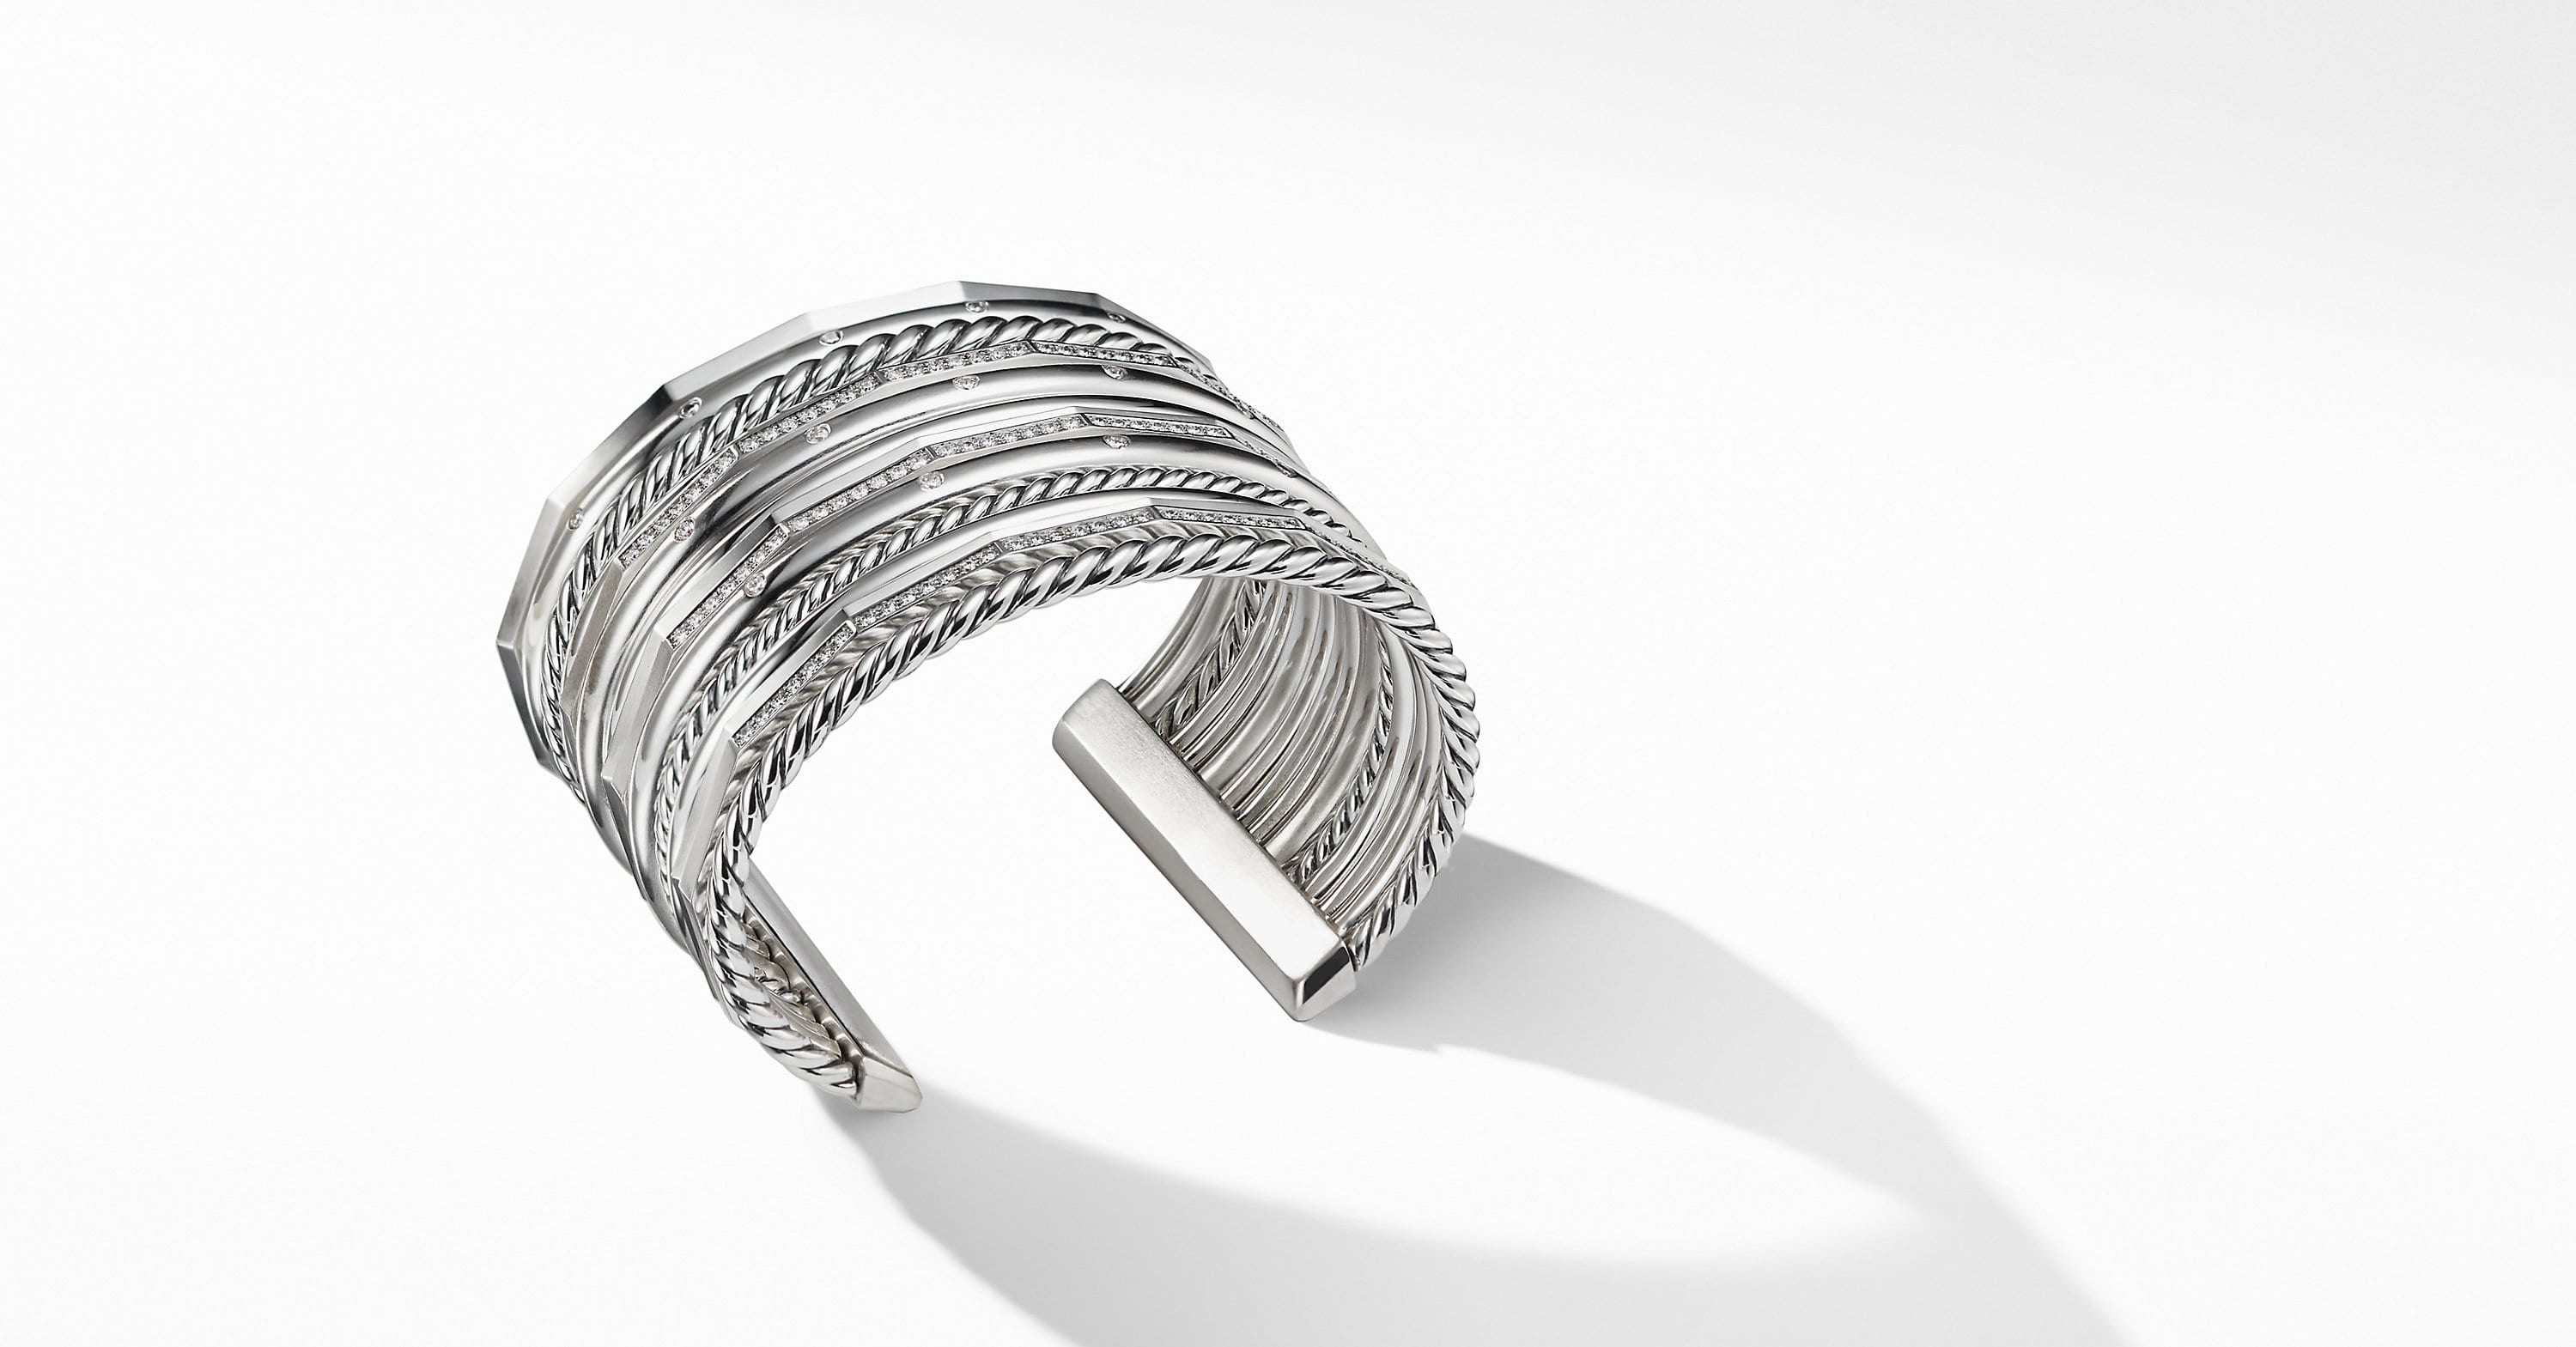 Stax Wide Cuff Bracelet with Diamonds, 54mm